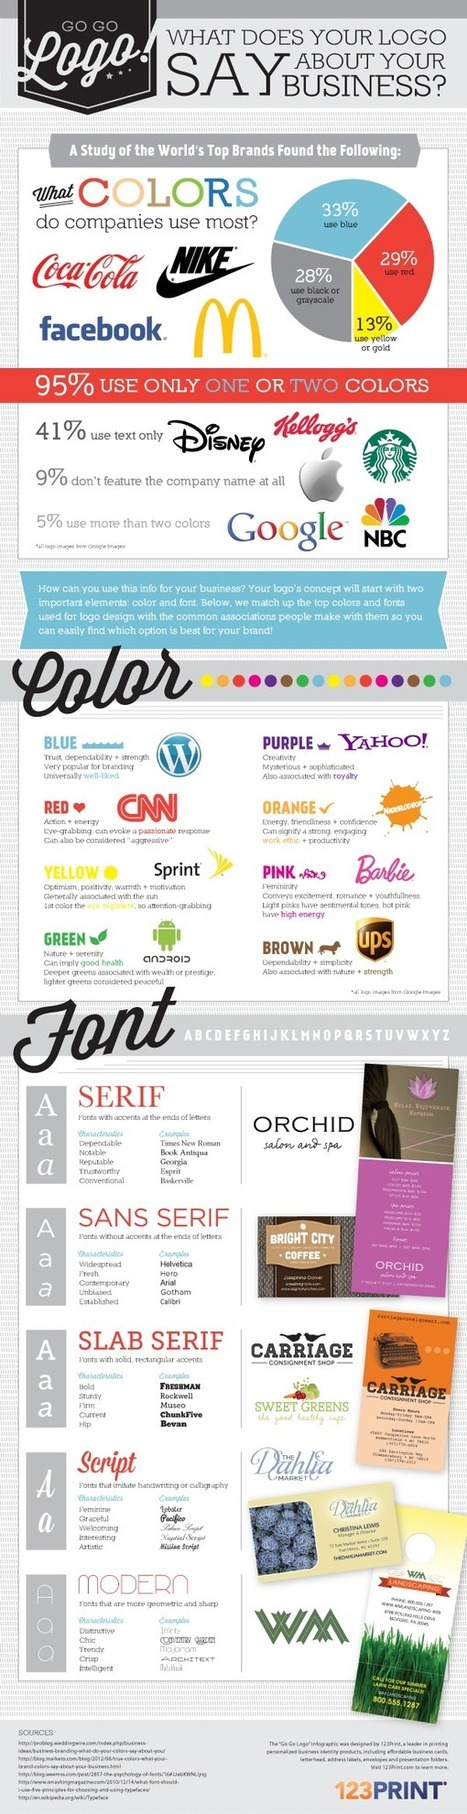 Infographic: What's in a brand's logo? | Cheap Online Printing | Scoop.it